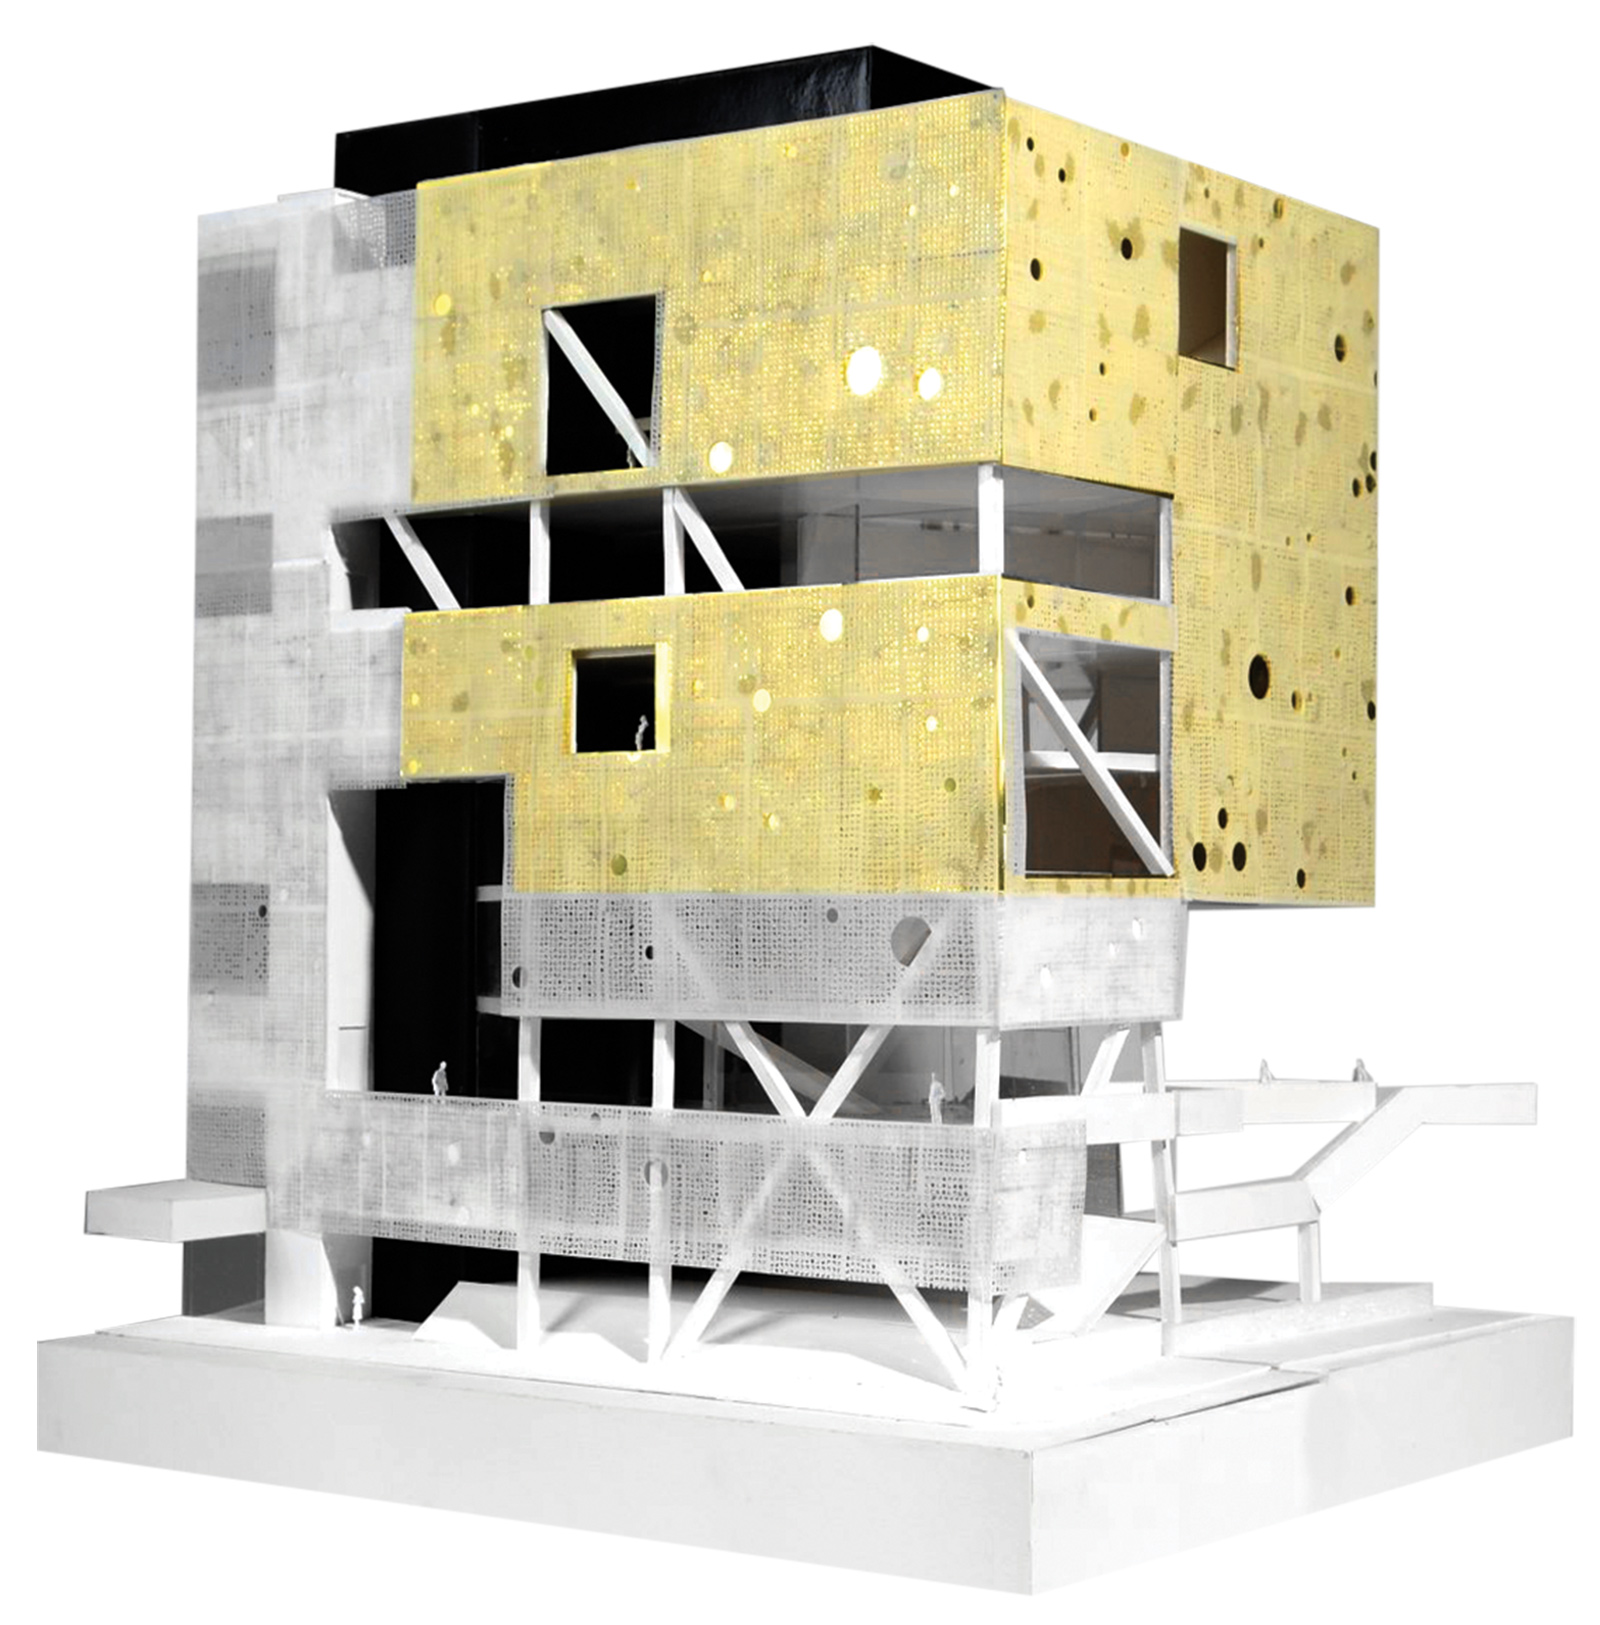 Model showing the layered facade and the floating golden cube of the upper SPCS public galleries